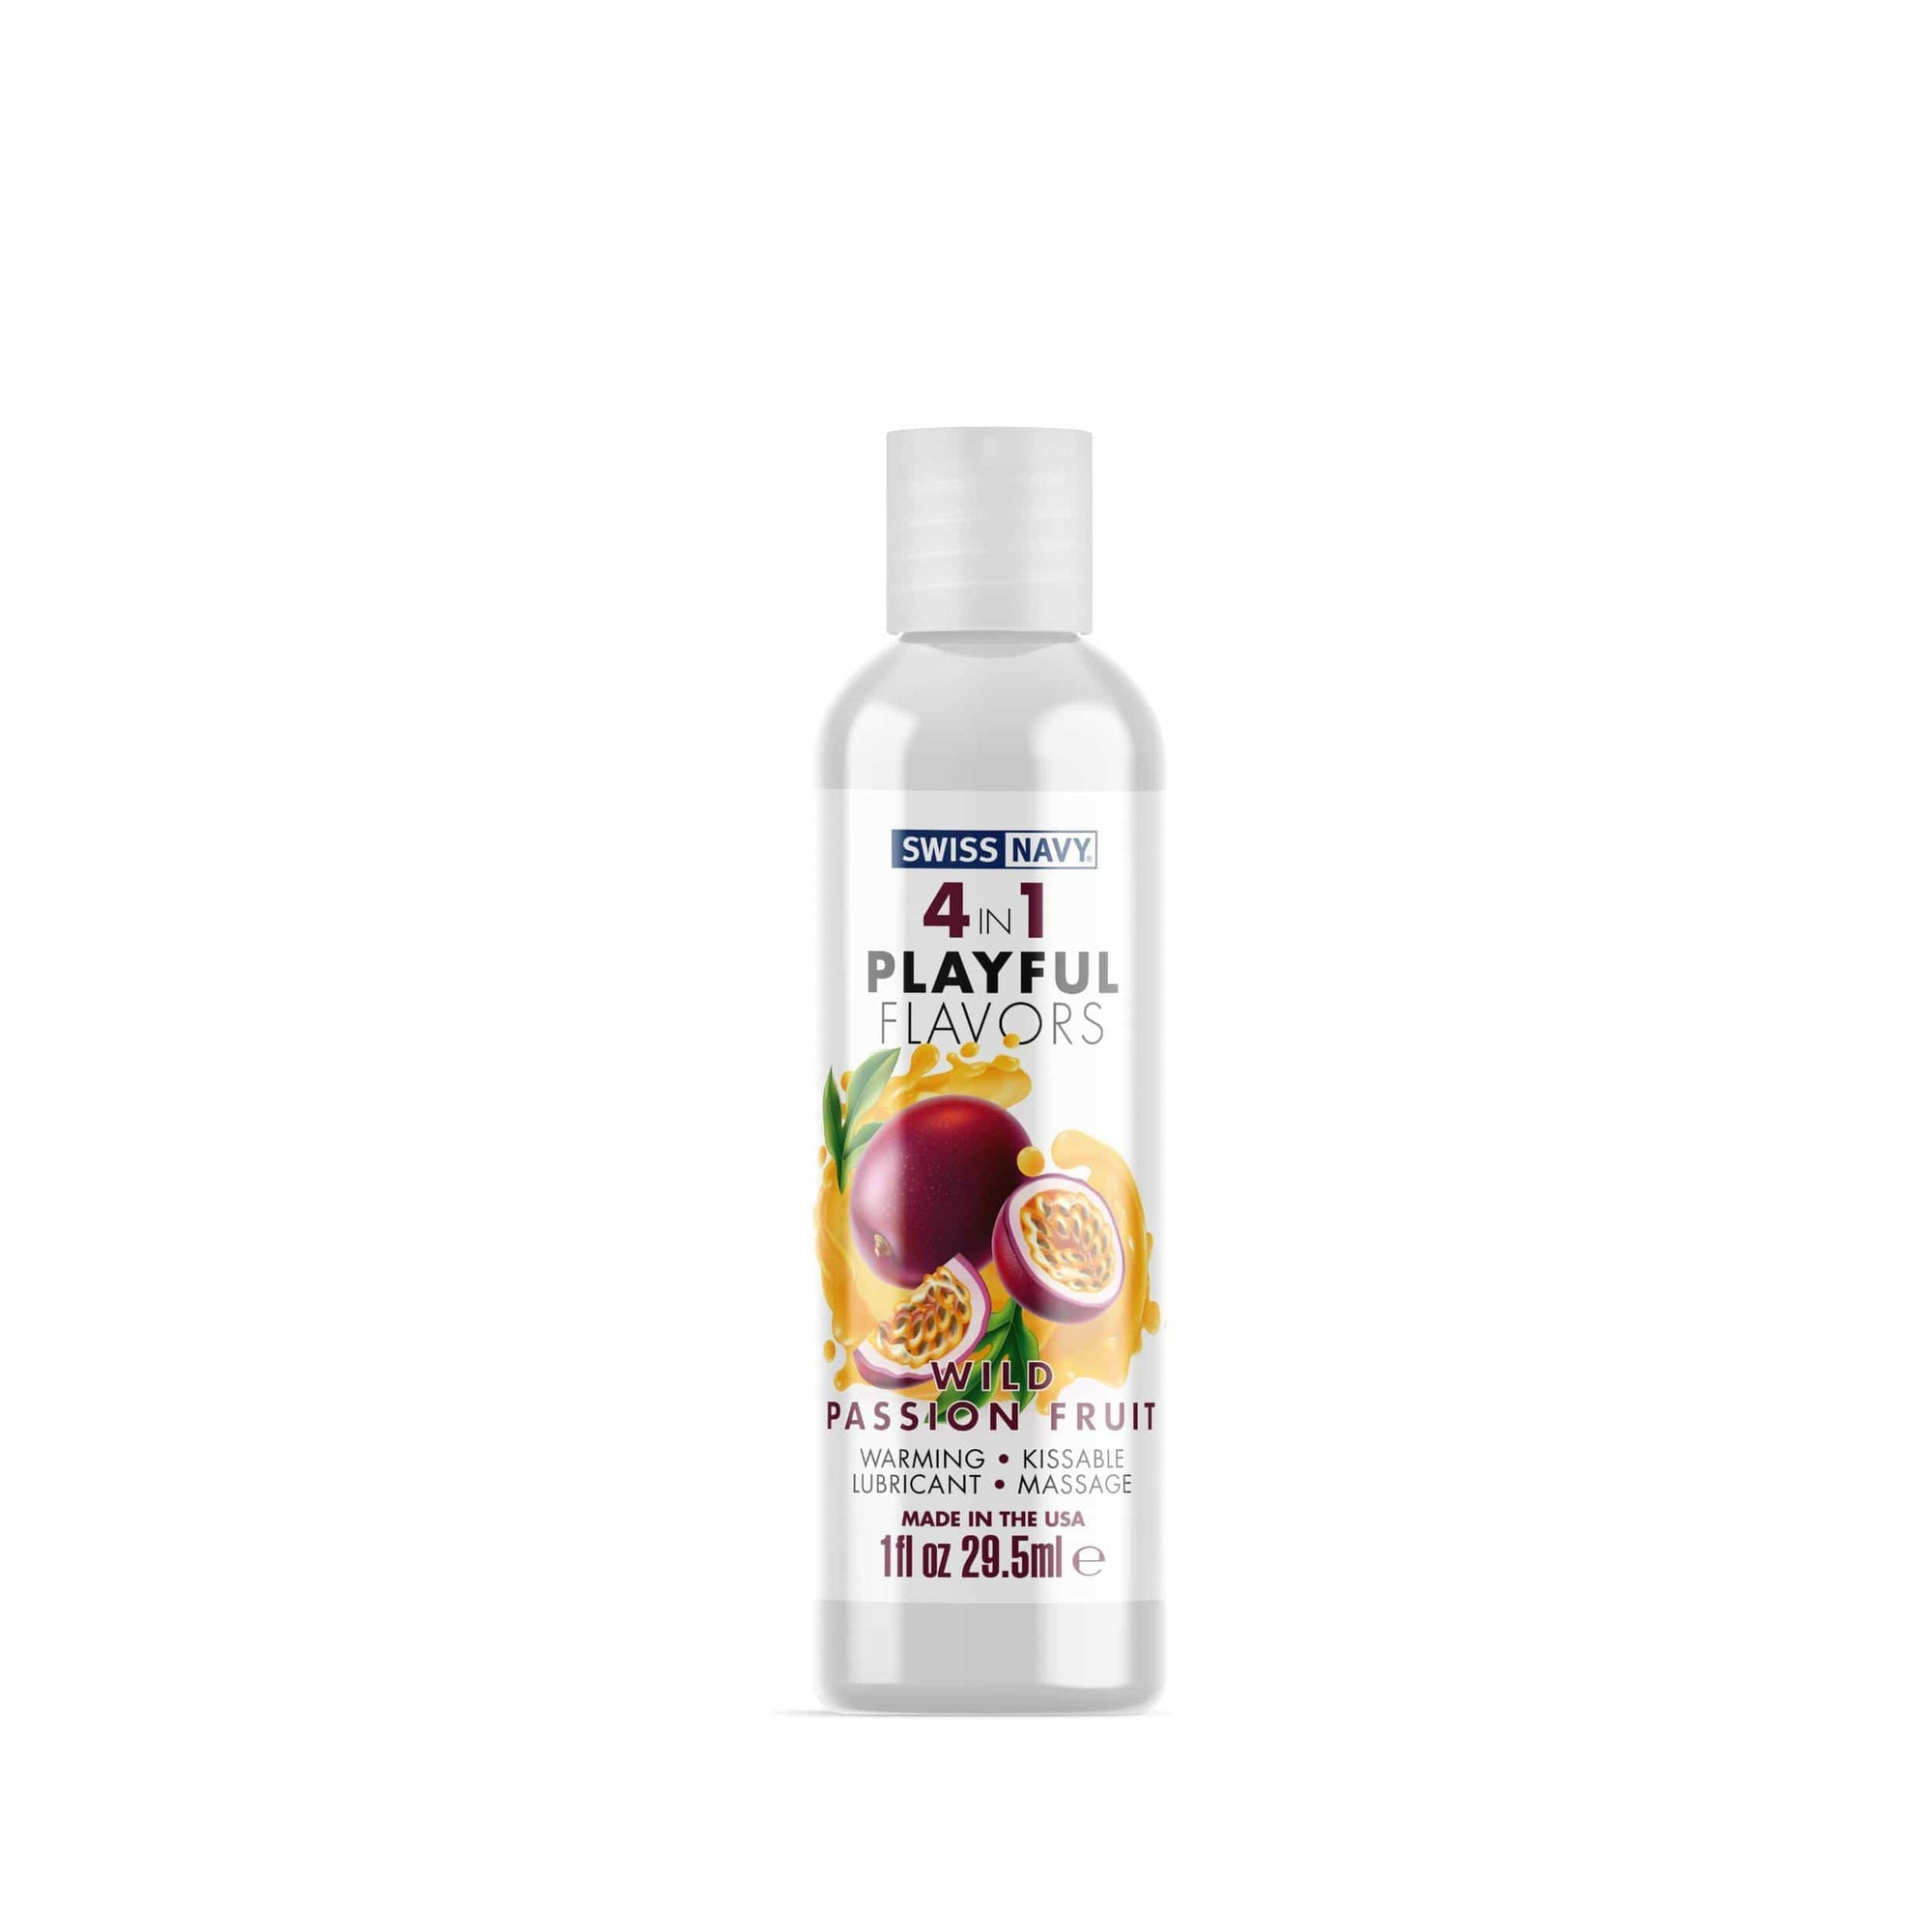 swiss navy 4 in 1 playful flavors wild passion fruit 1 fl oz